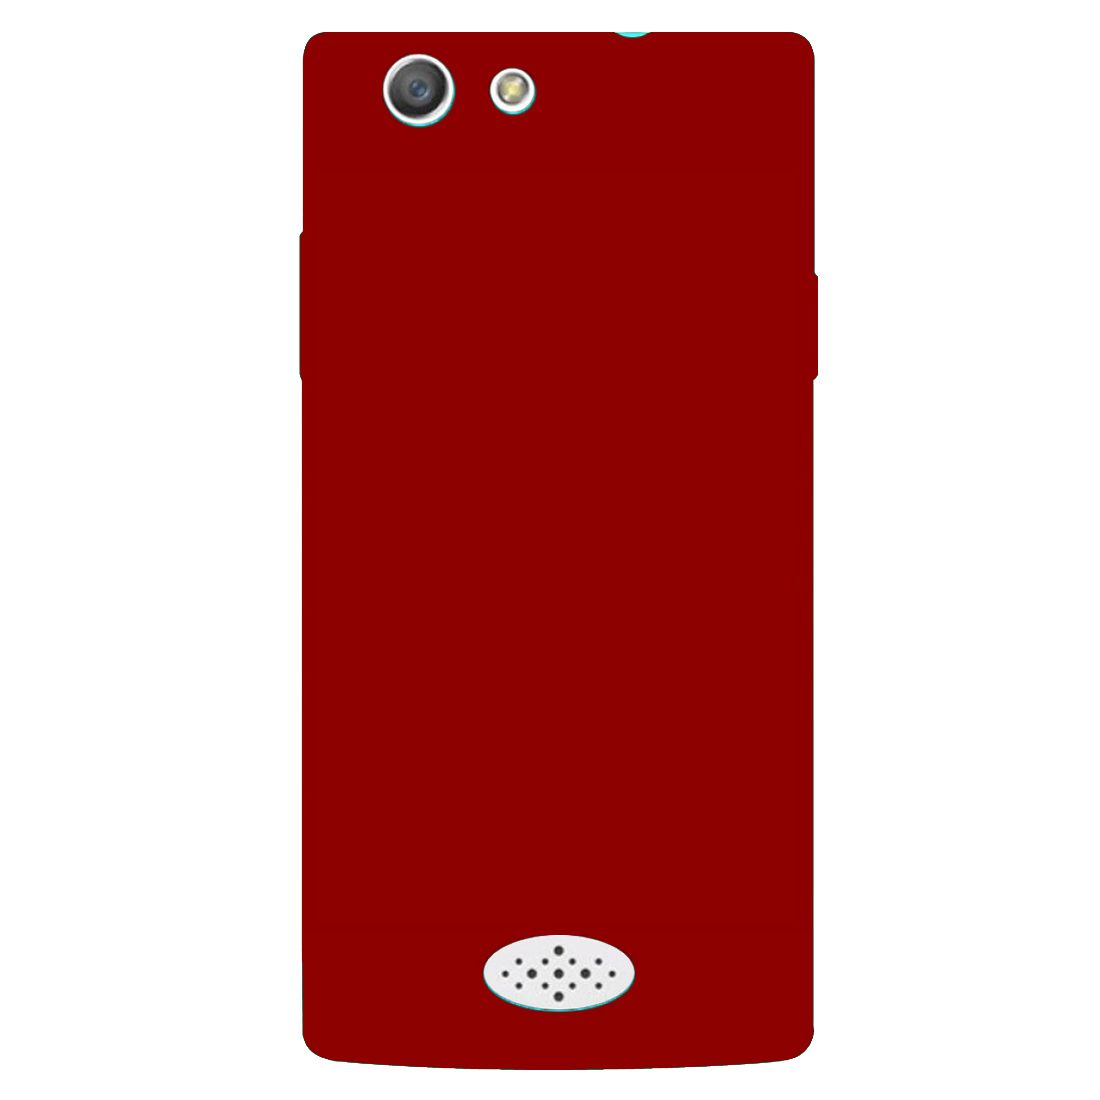 factory price a33d6 45c13 Oppo Neo 5 Cover by Coverup - Red